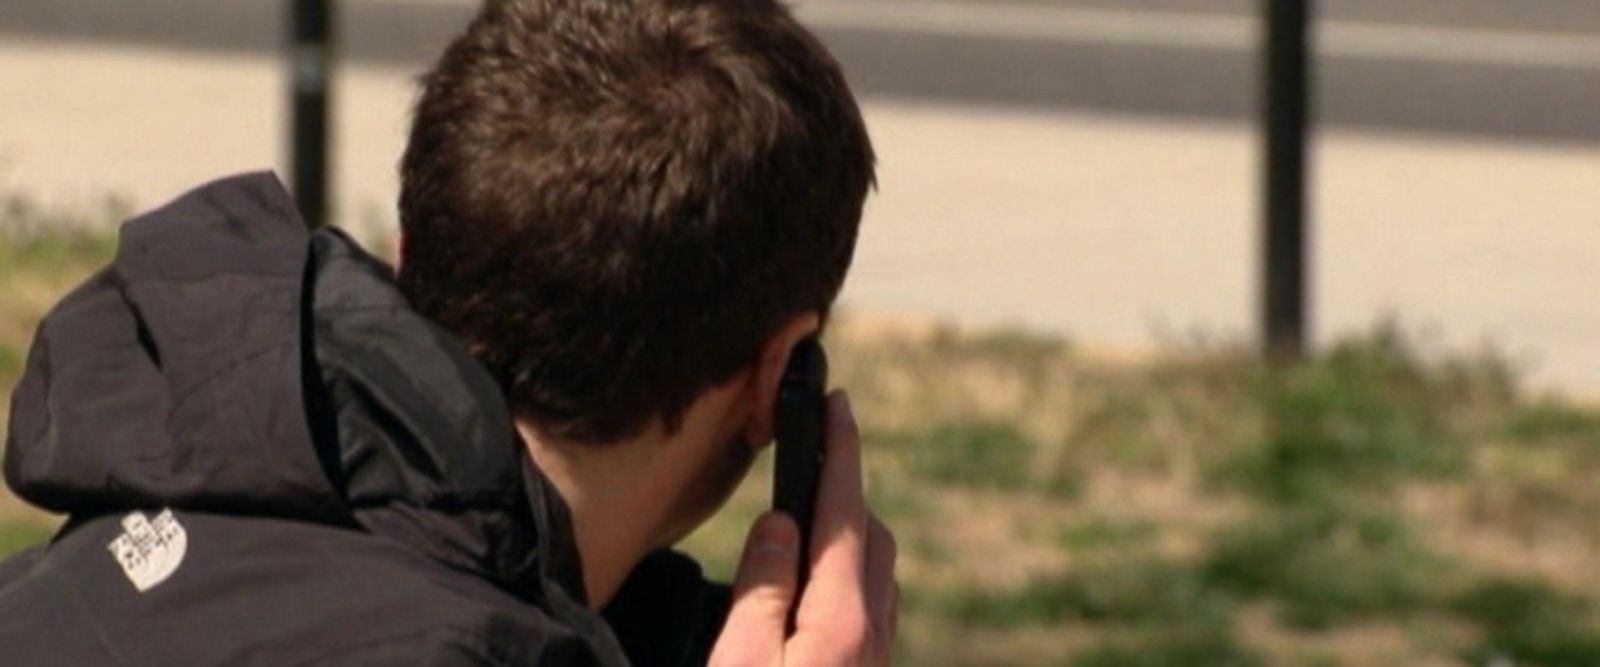 VIDEO: New warnings on the possible dangers of cellphones